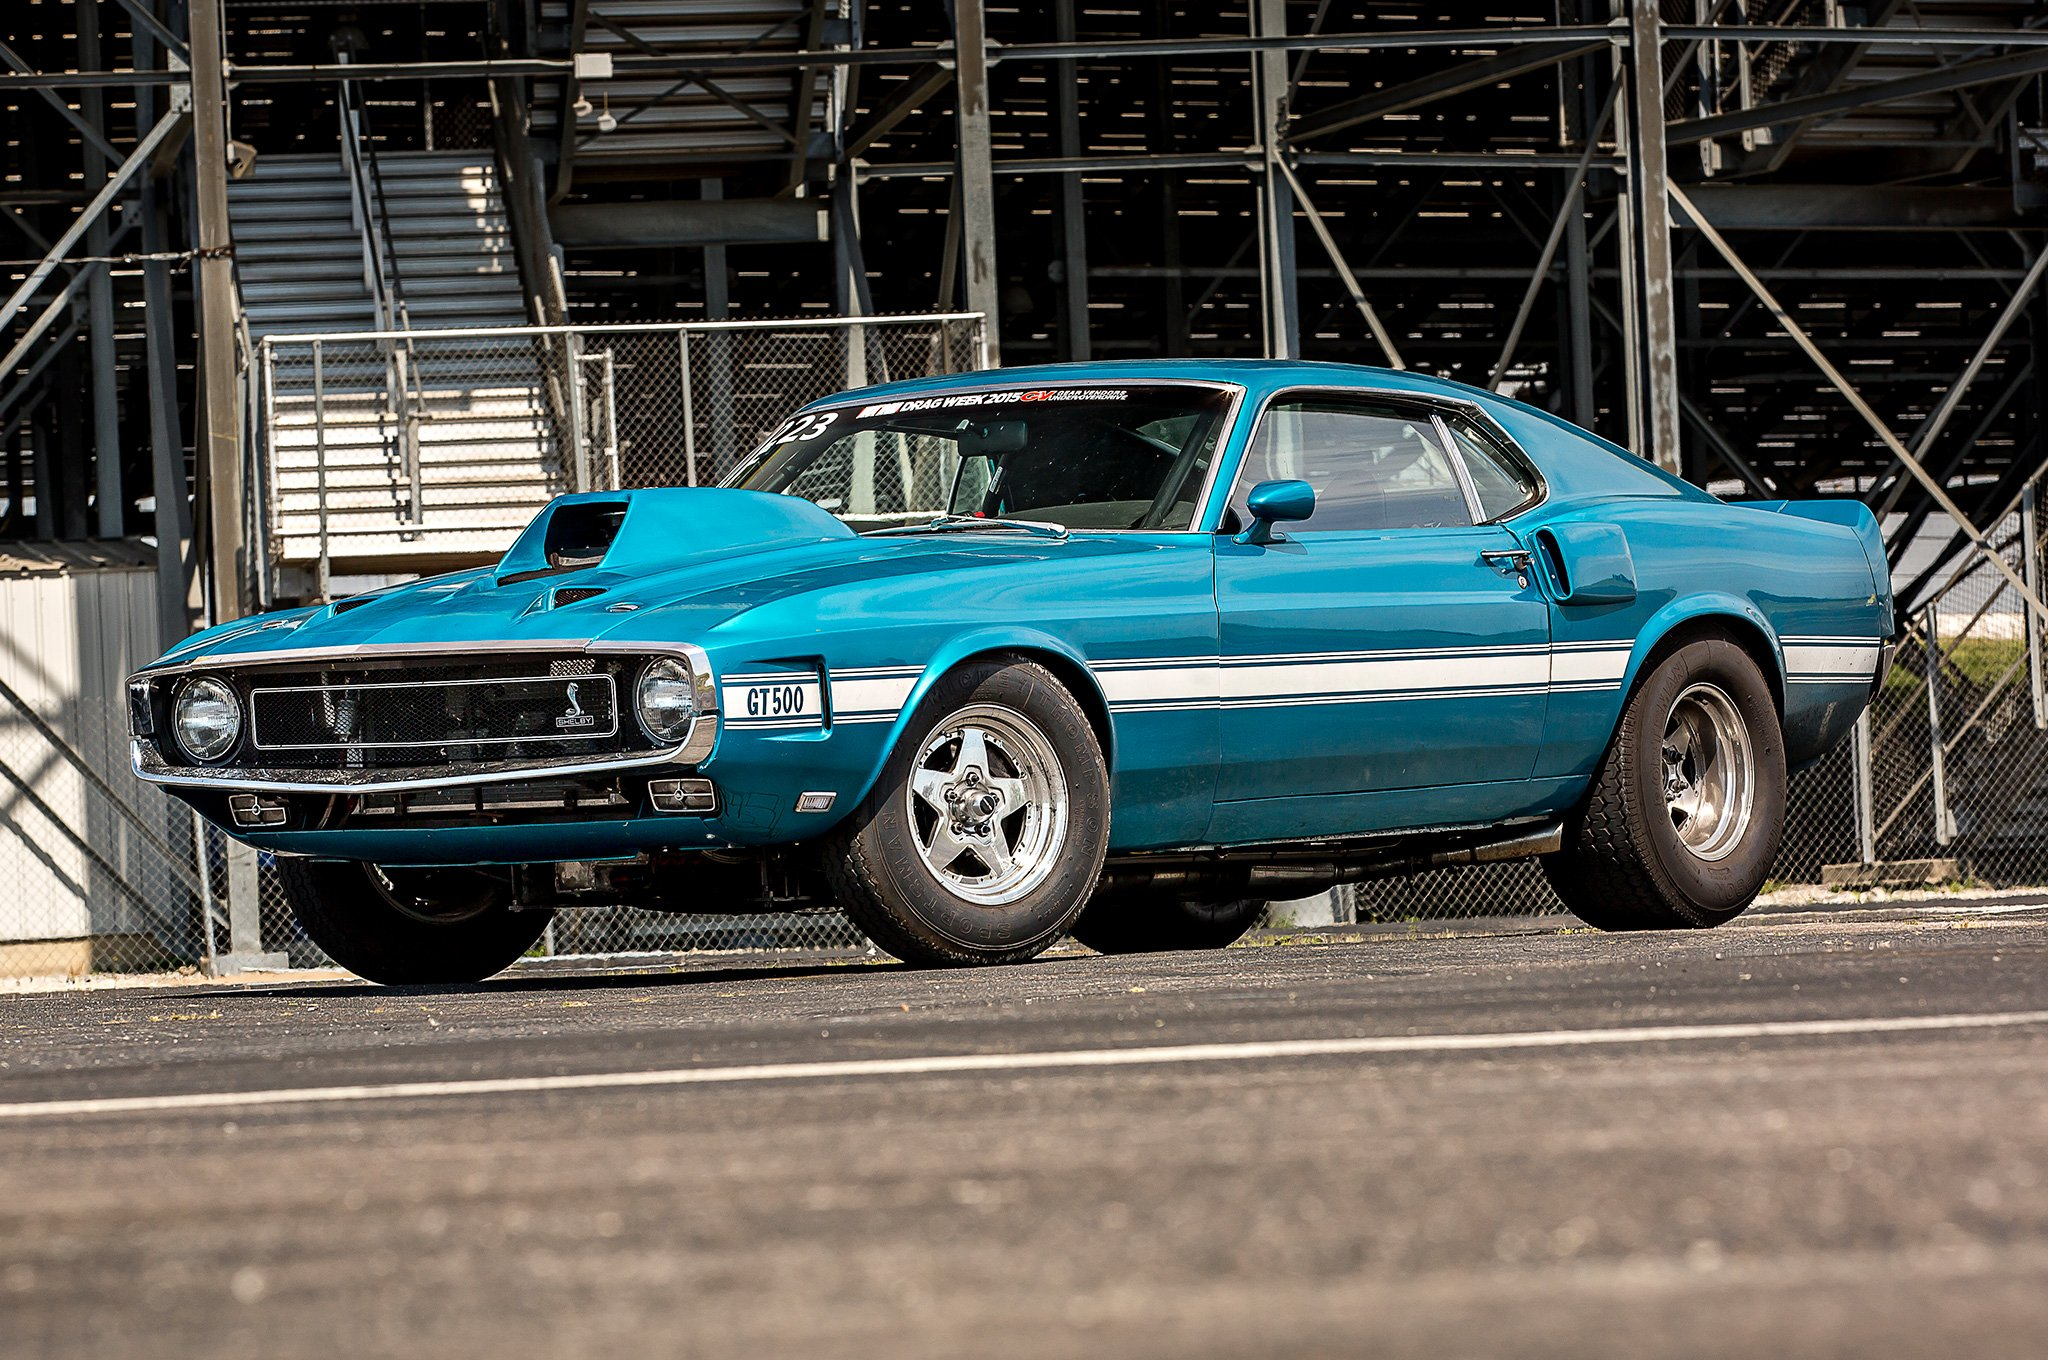 1969 ford mustang shelby gt 500 drag race pro stock dragstaer usa 05 wallpaper 2048x1360 937444 wallpaperup